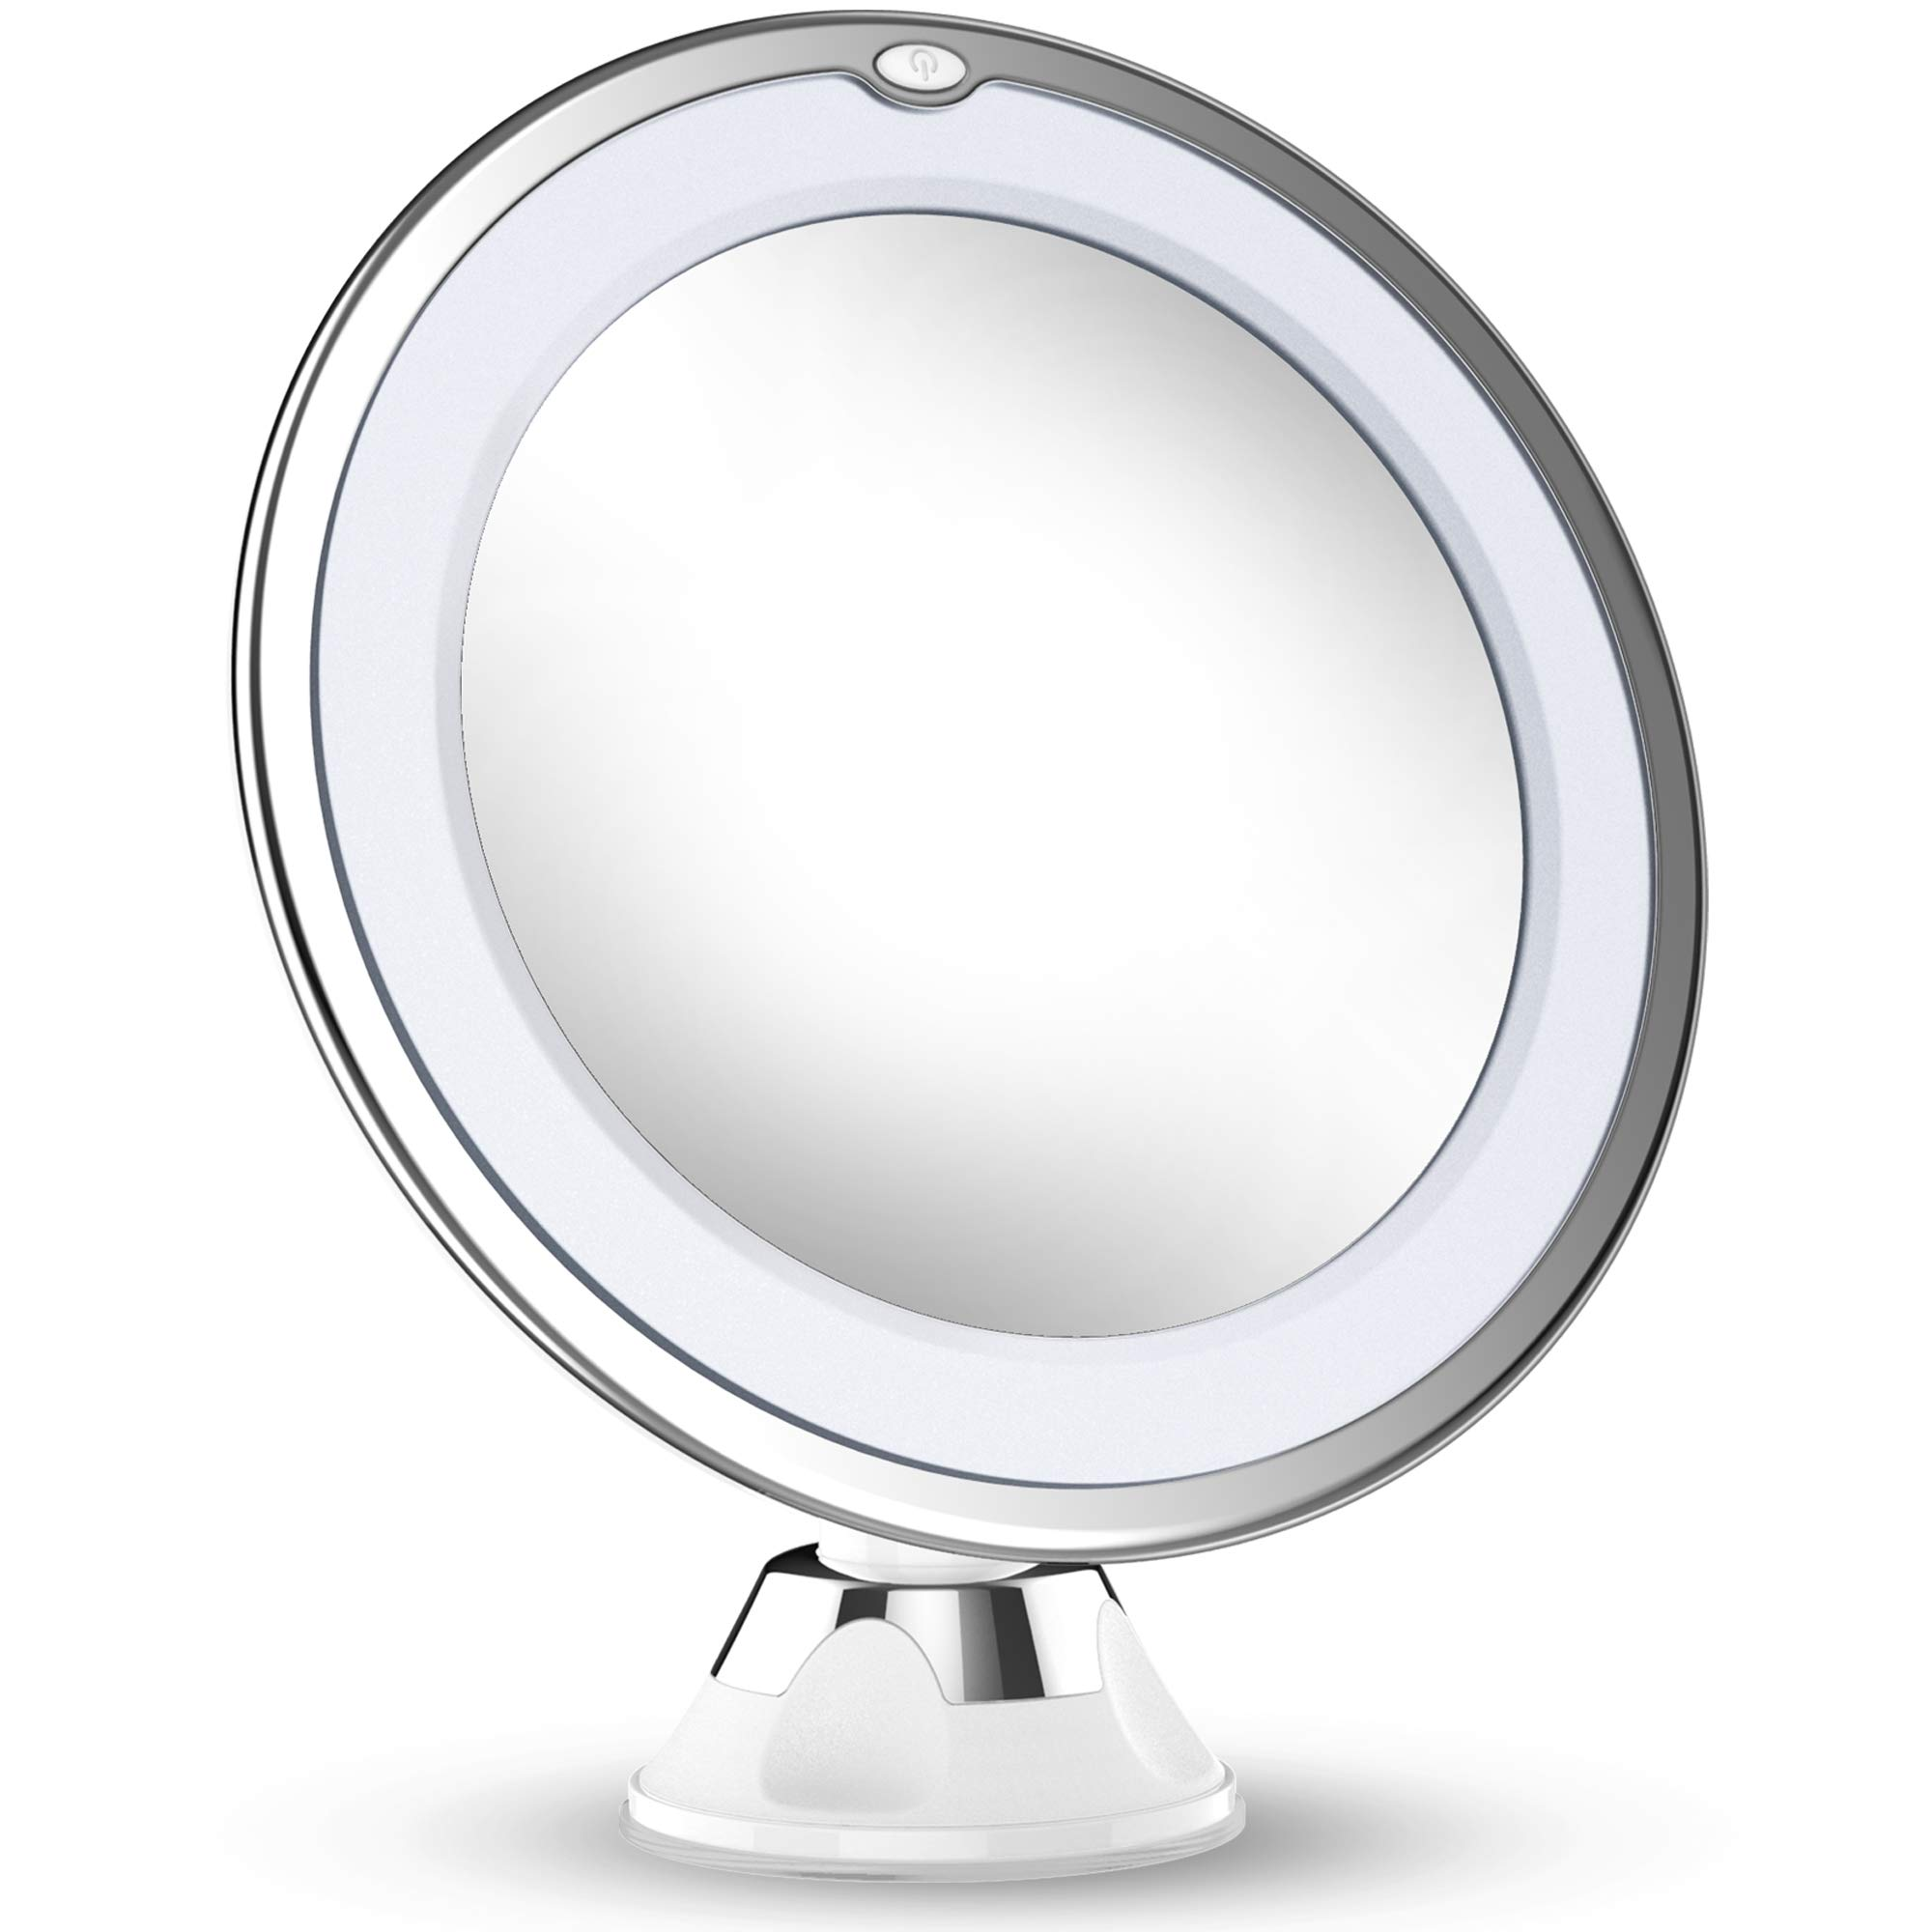 Updated 2019 Version 10X Magnifying Makeup Vanity Mirror With Lights, LED Lighted Portable Hand Cosmetic Magnification Light up Mirrors for Home Tabletop Bathroom Shower Travel by Vimdiff